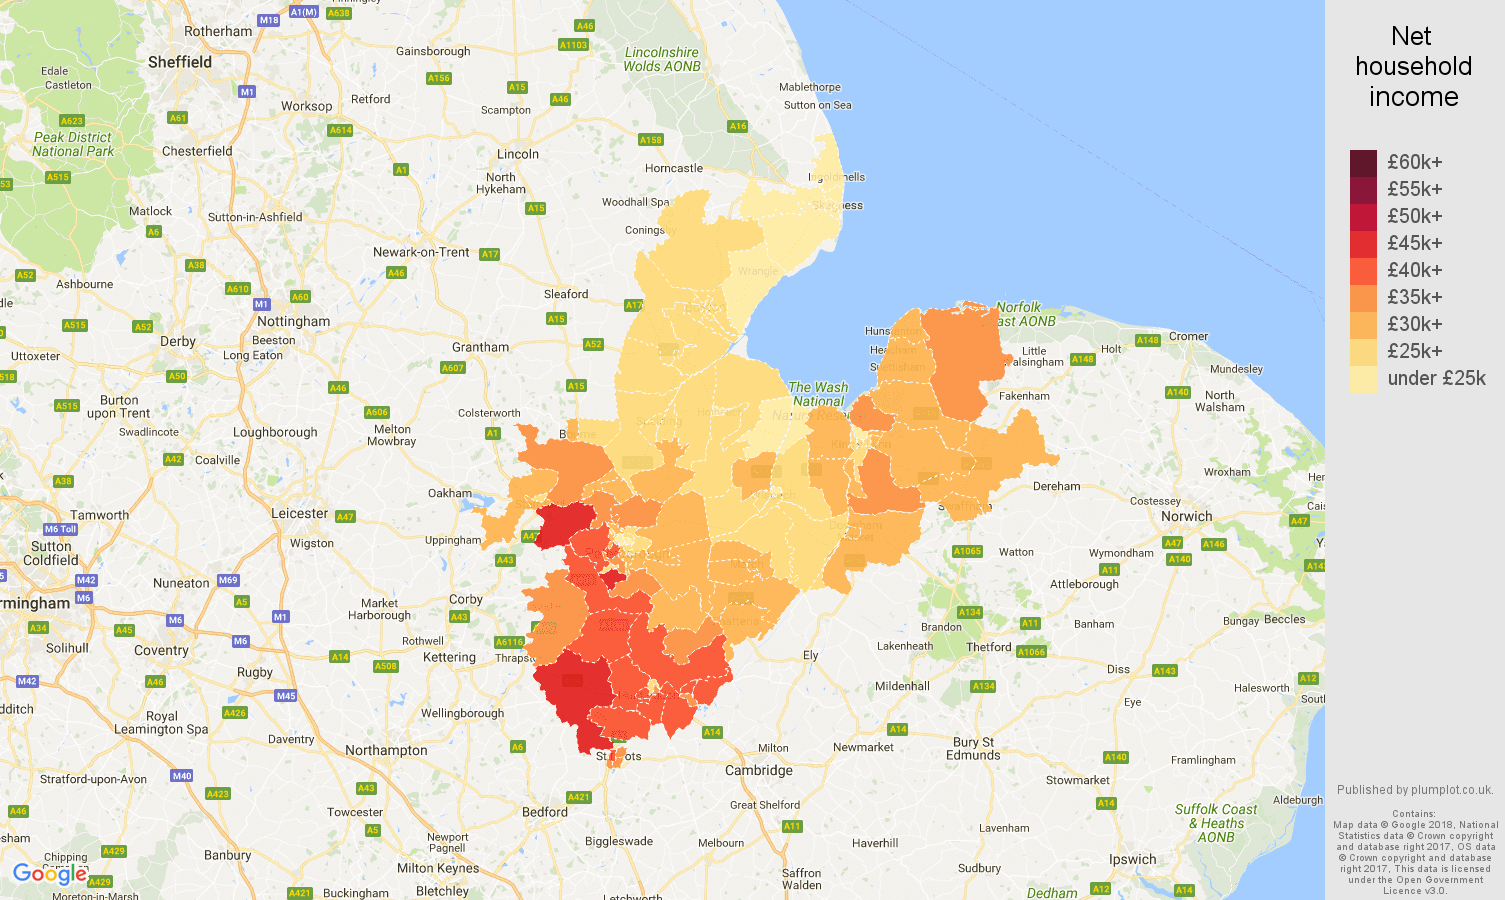 Peterborough net household income map